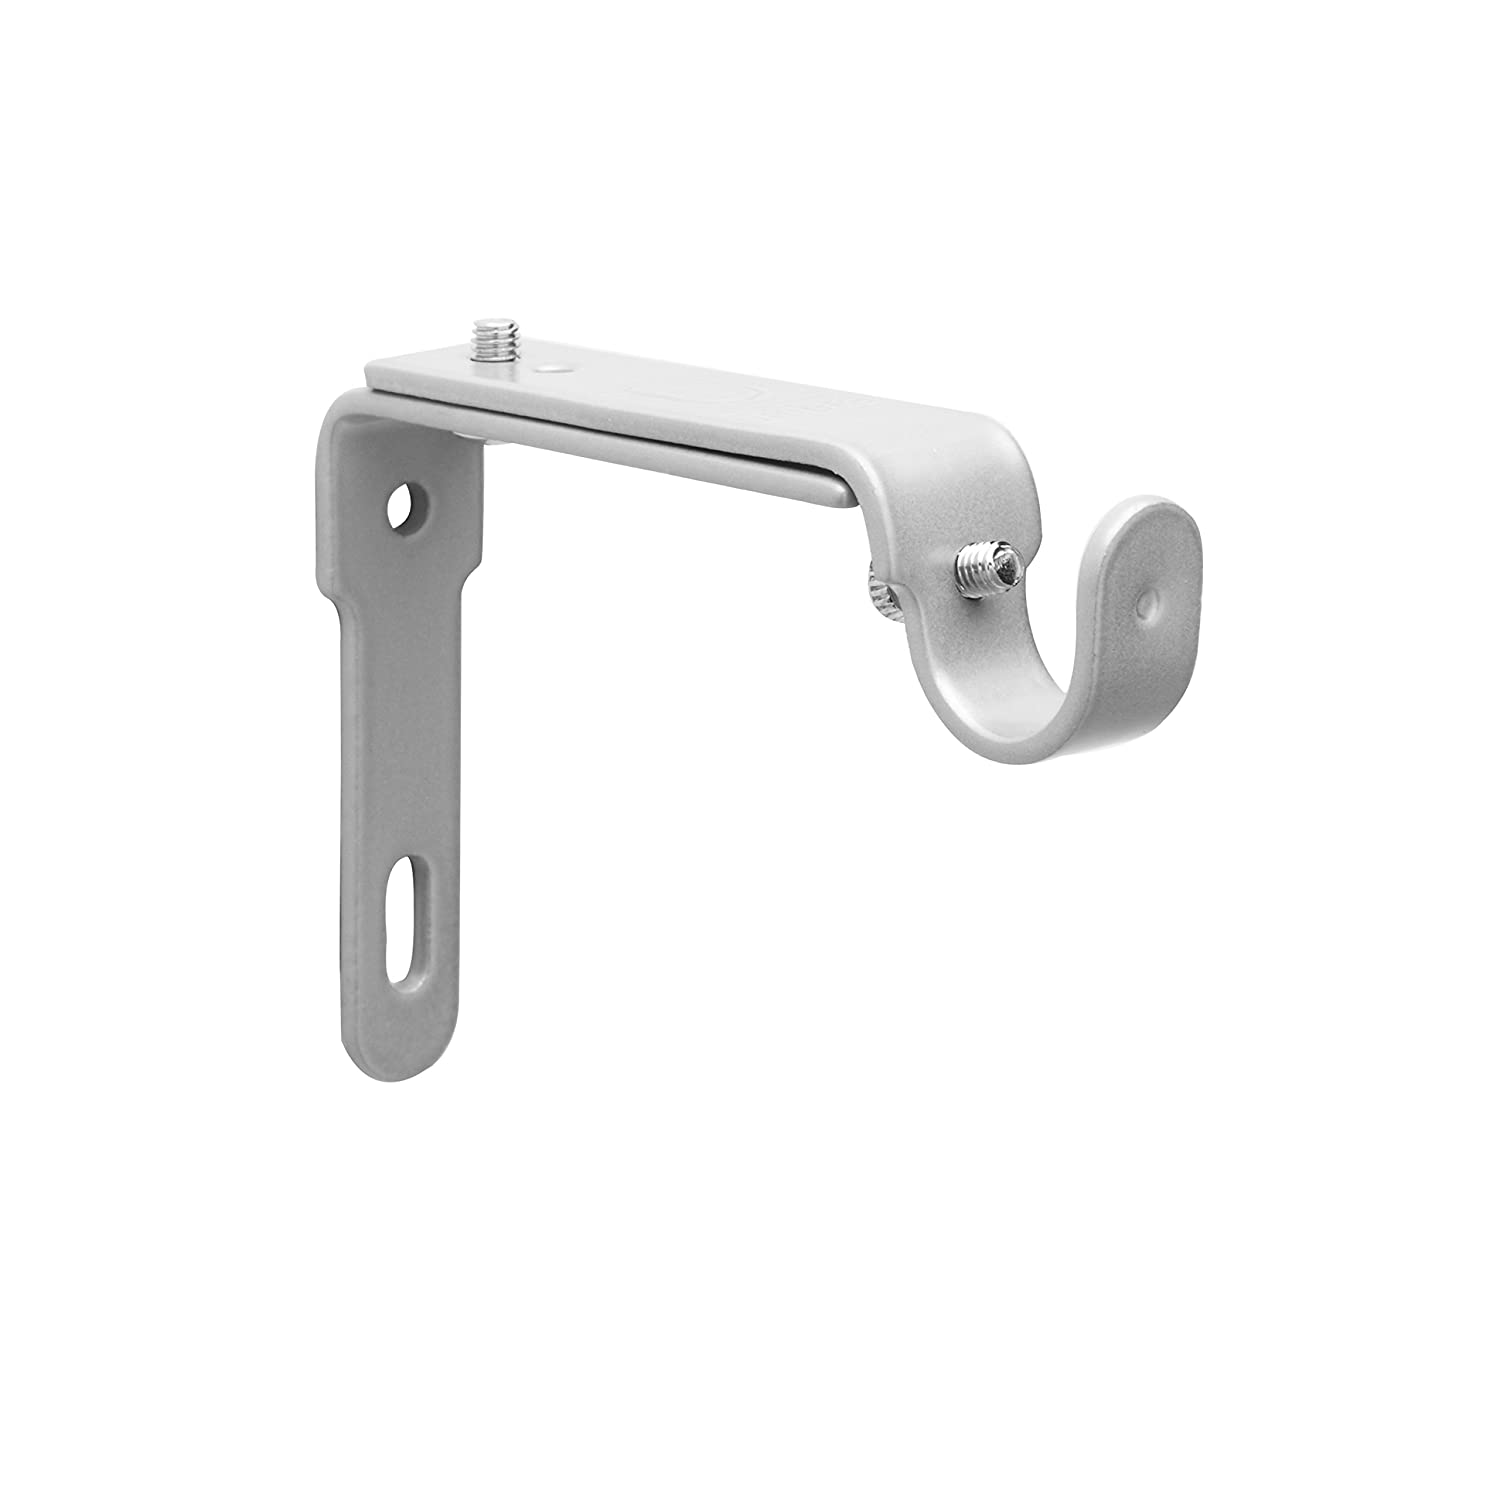 Amazon.com: Umbra Adjustable Bracket For Drapery Rod, Set Of 2, Nickel:  Home U0026 Kitchen